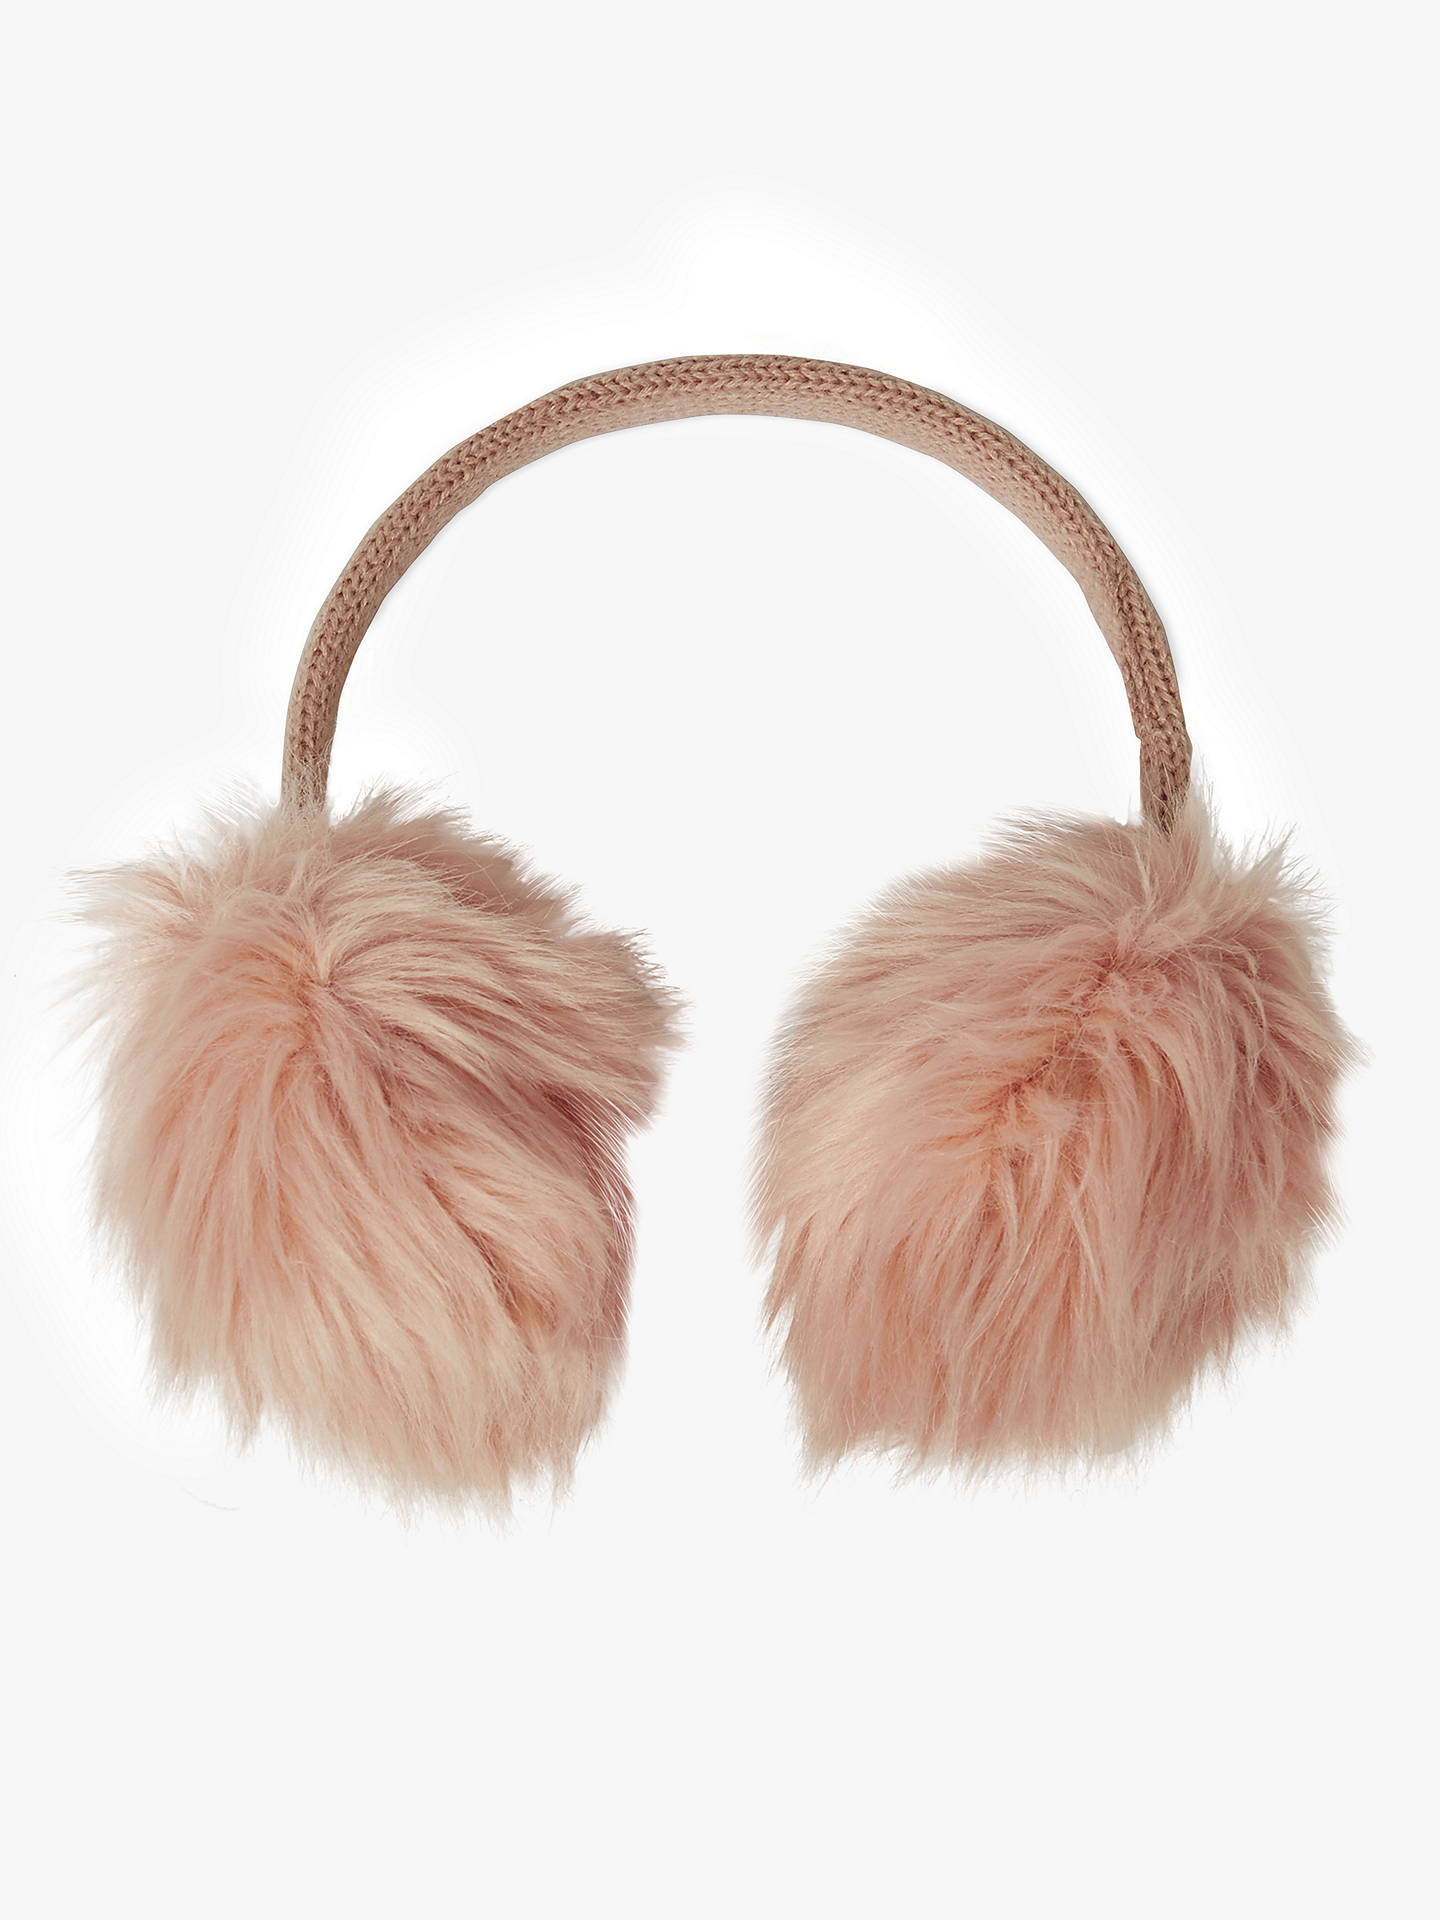 BuyJohn Lewis & Partners Children's Faux Fur Ear Muffs, Pink Online at johnlewis.com